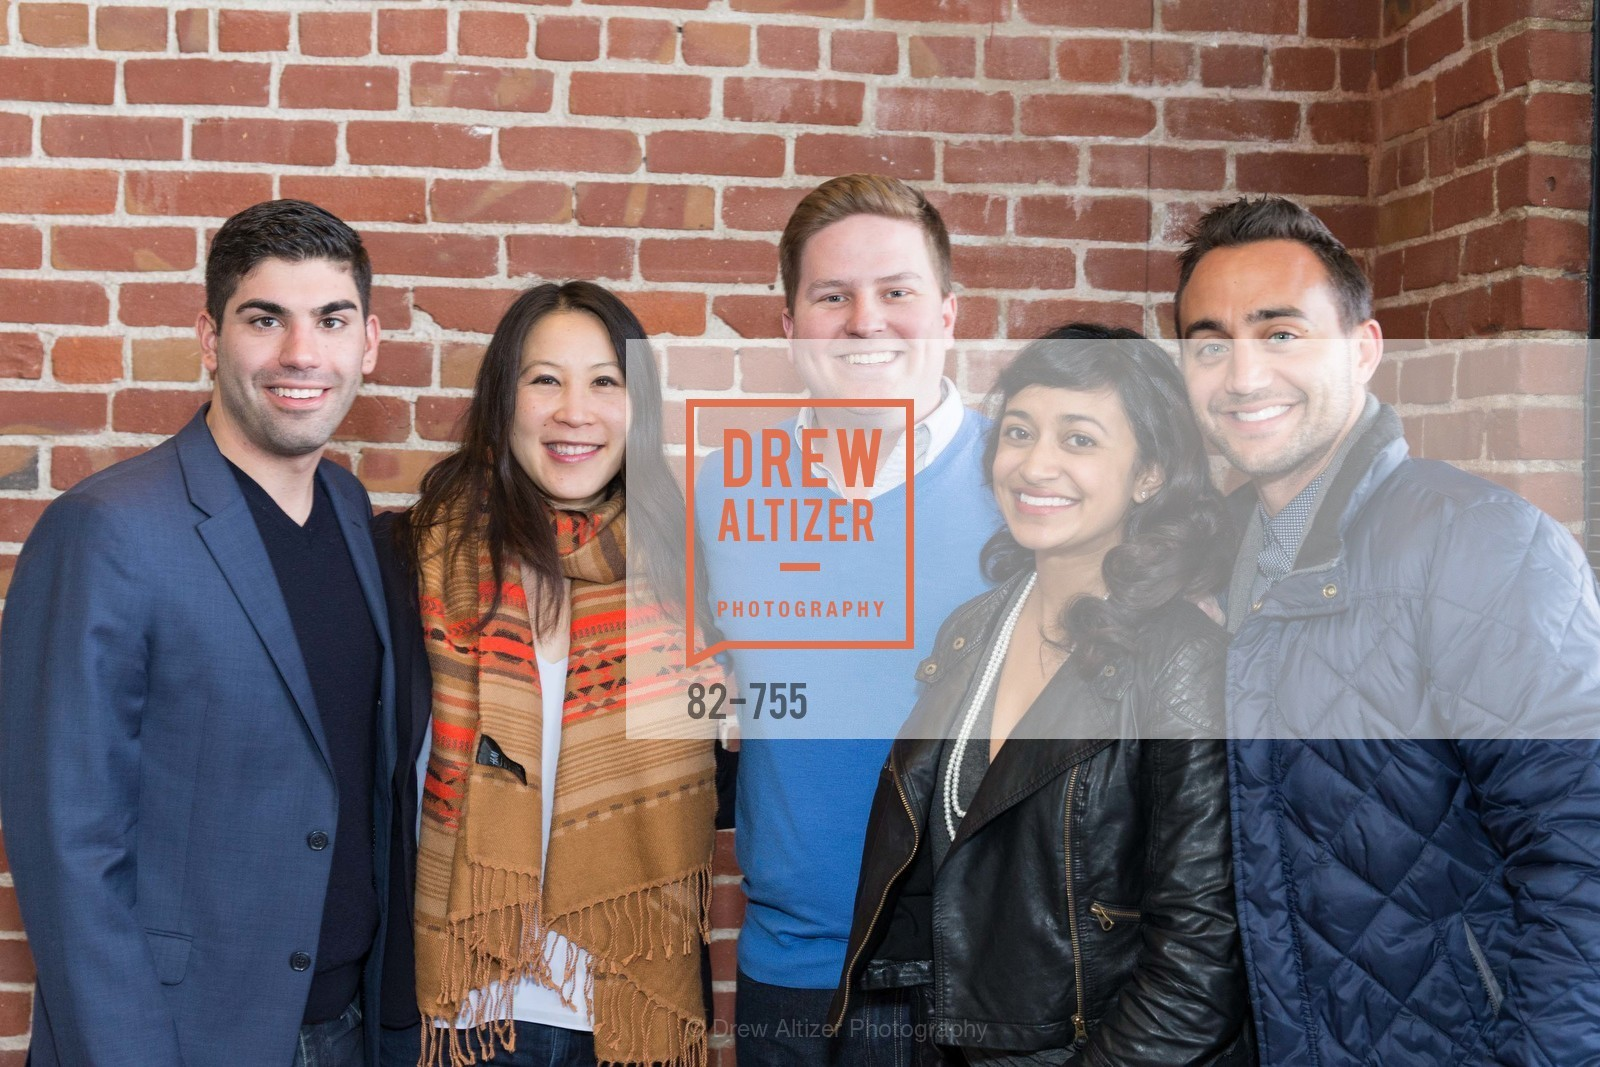 Danny Nicolopoulos, Adria Hou, Marshall Osborne, Amritha Prasad, Max Crowley, ENTOURAGE:  Private Event, US, May 31st, 2015,Drew Altizer, Drew Altizer Photography, full-service agency, private events, San Francisco photographer, photographer california